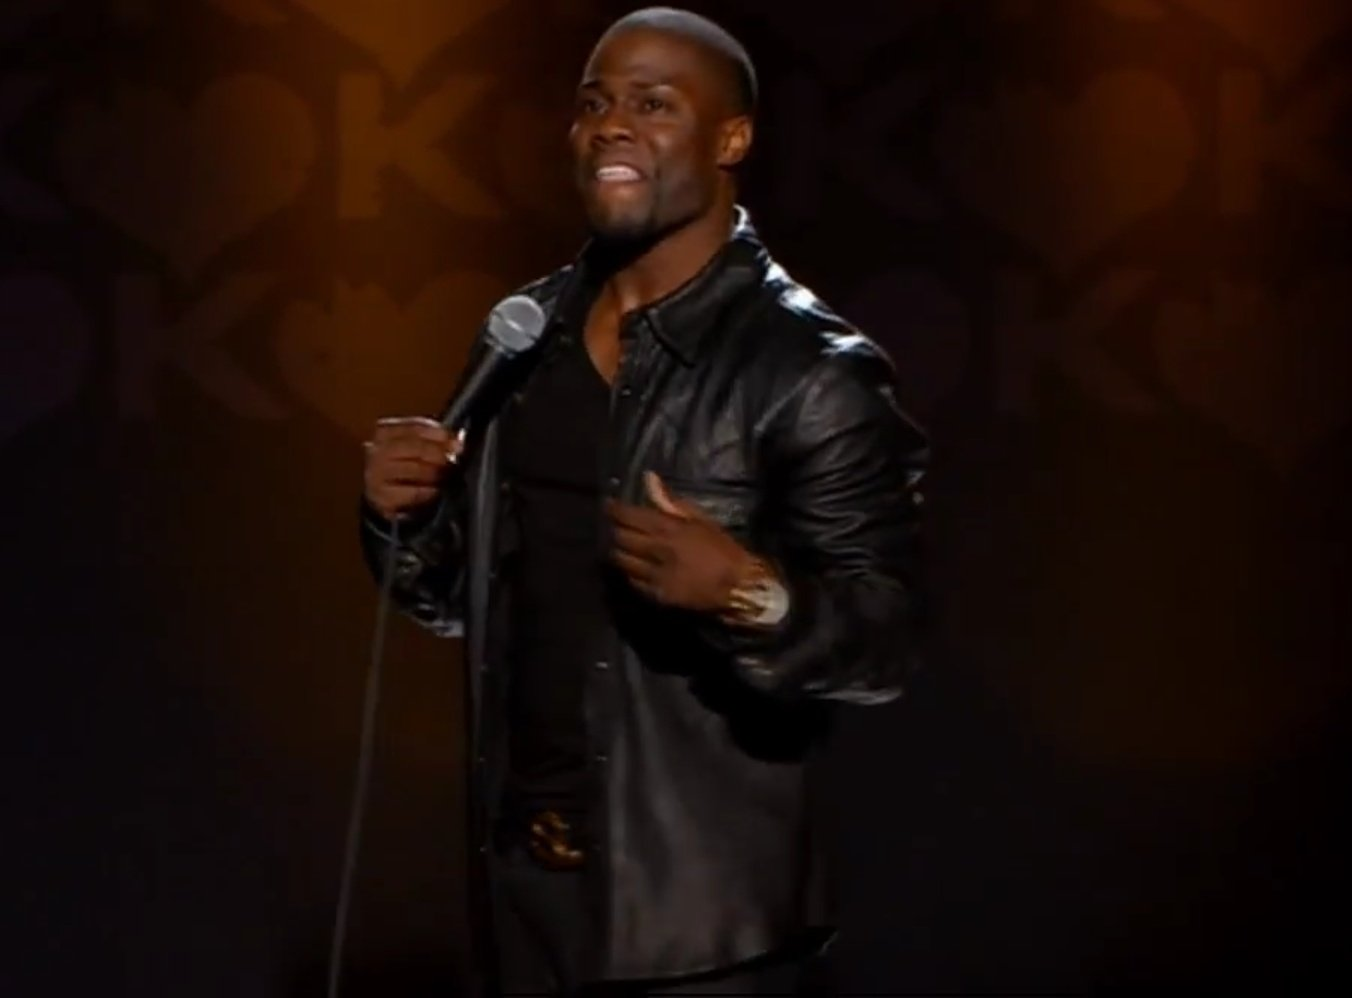 Kevin hart tour dates 2019 in Melbourne